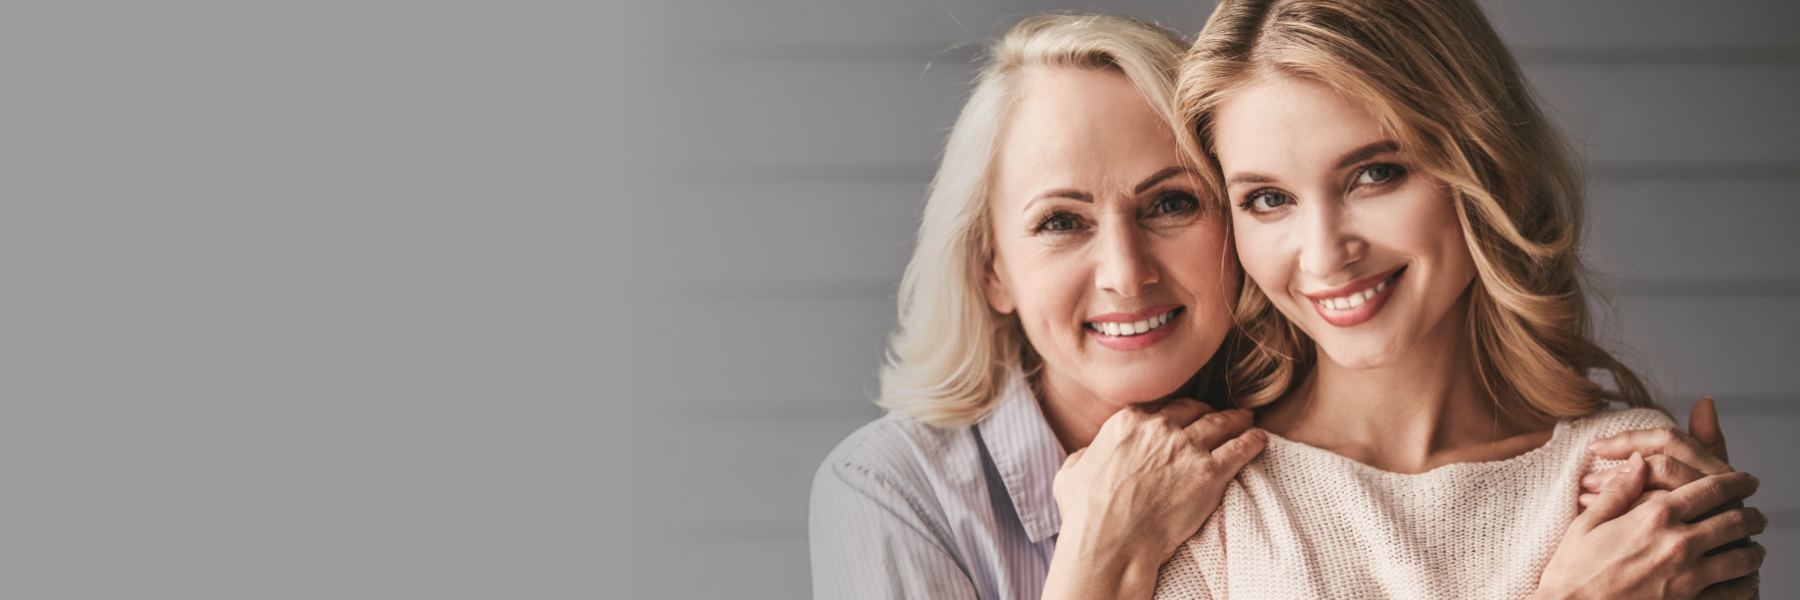 BOTOX® and Juvéderm | Dentist